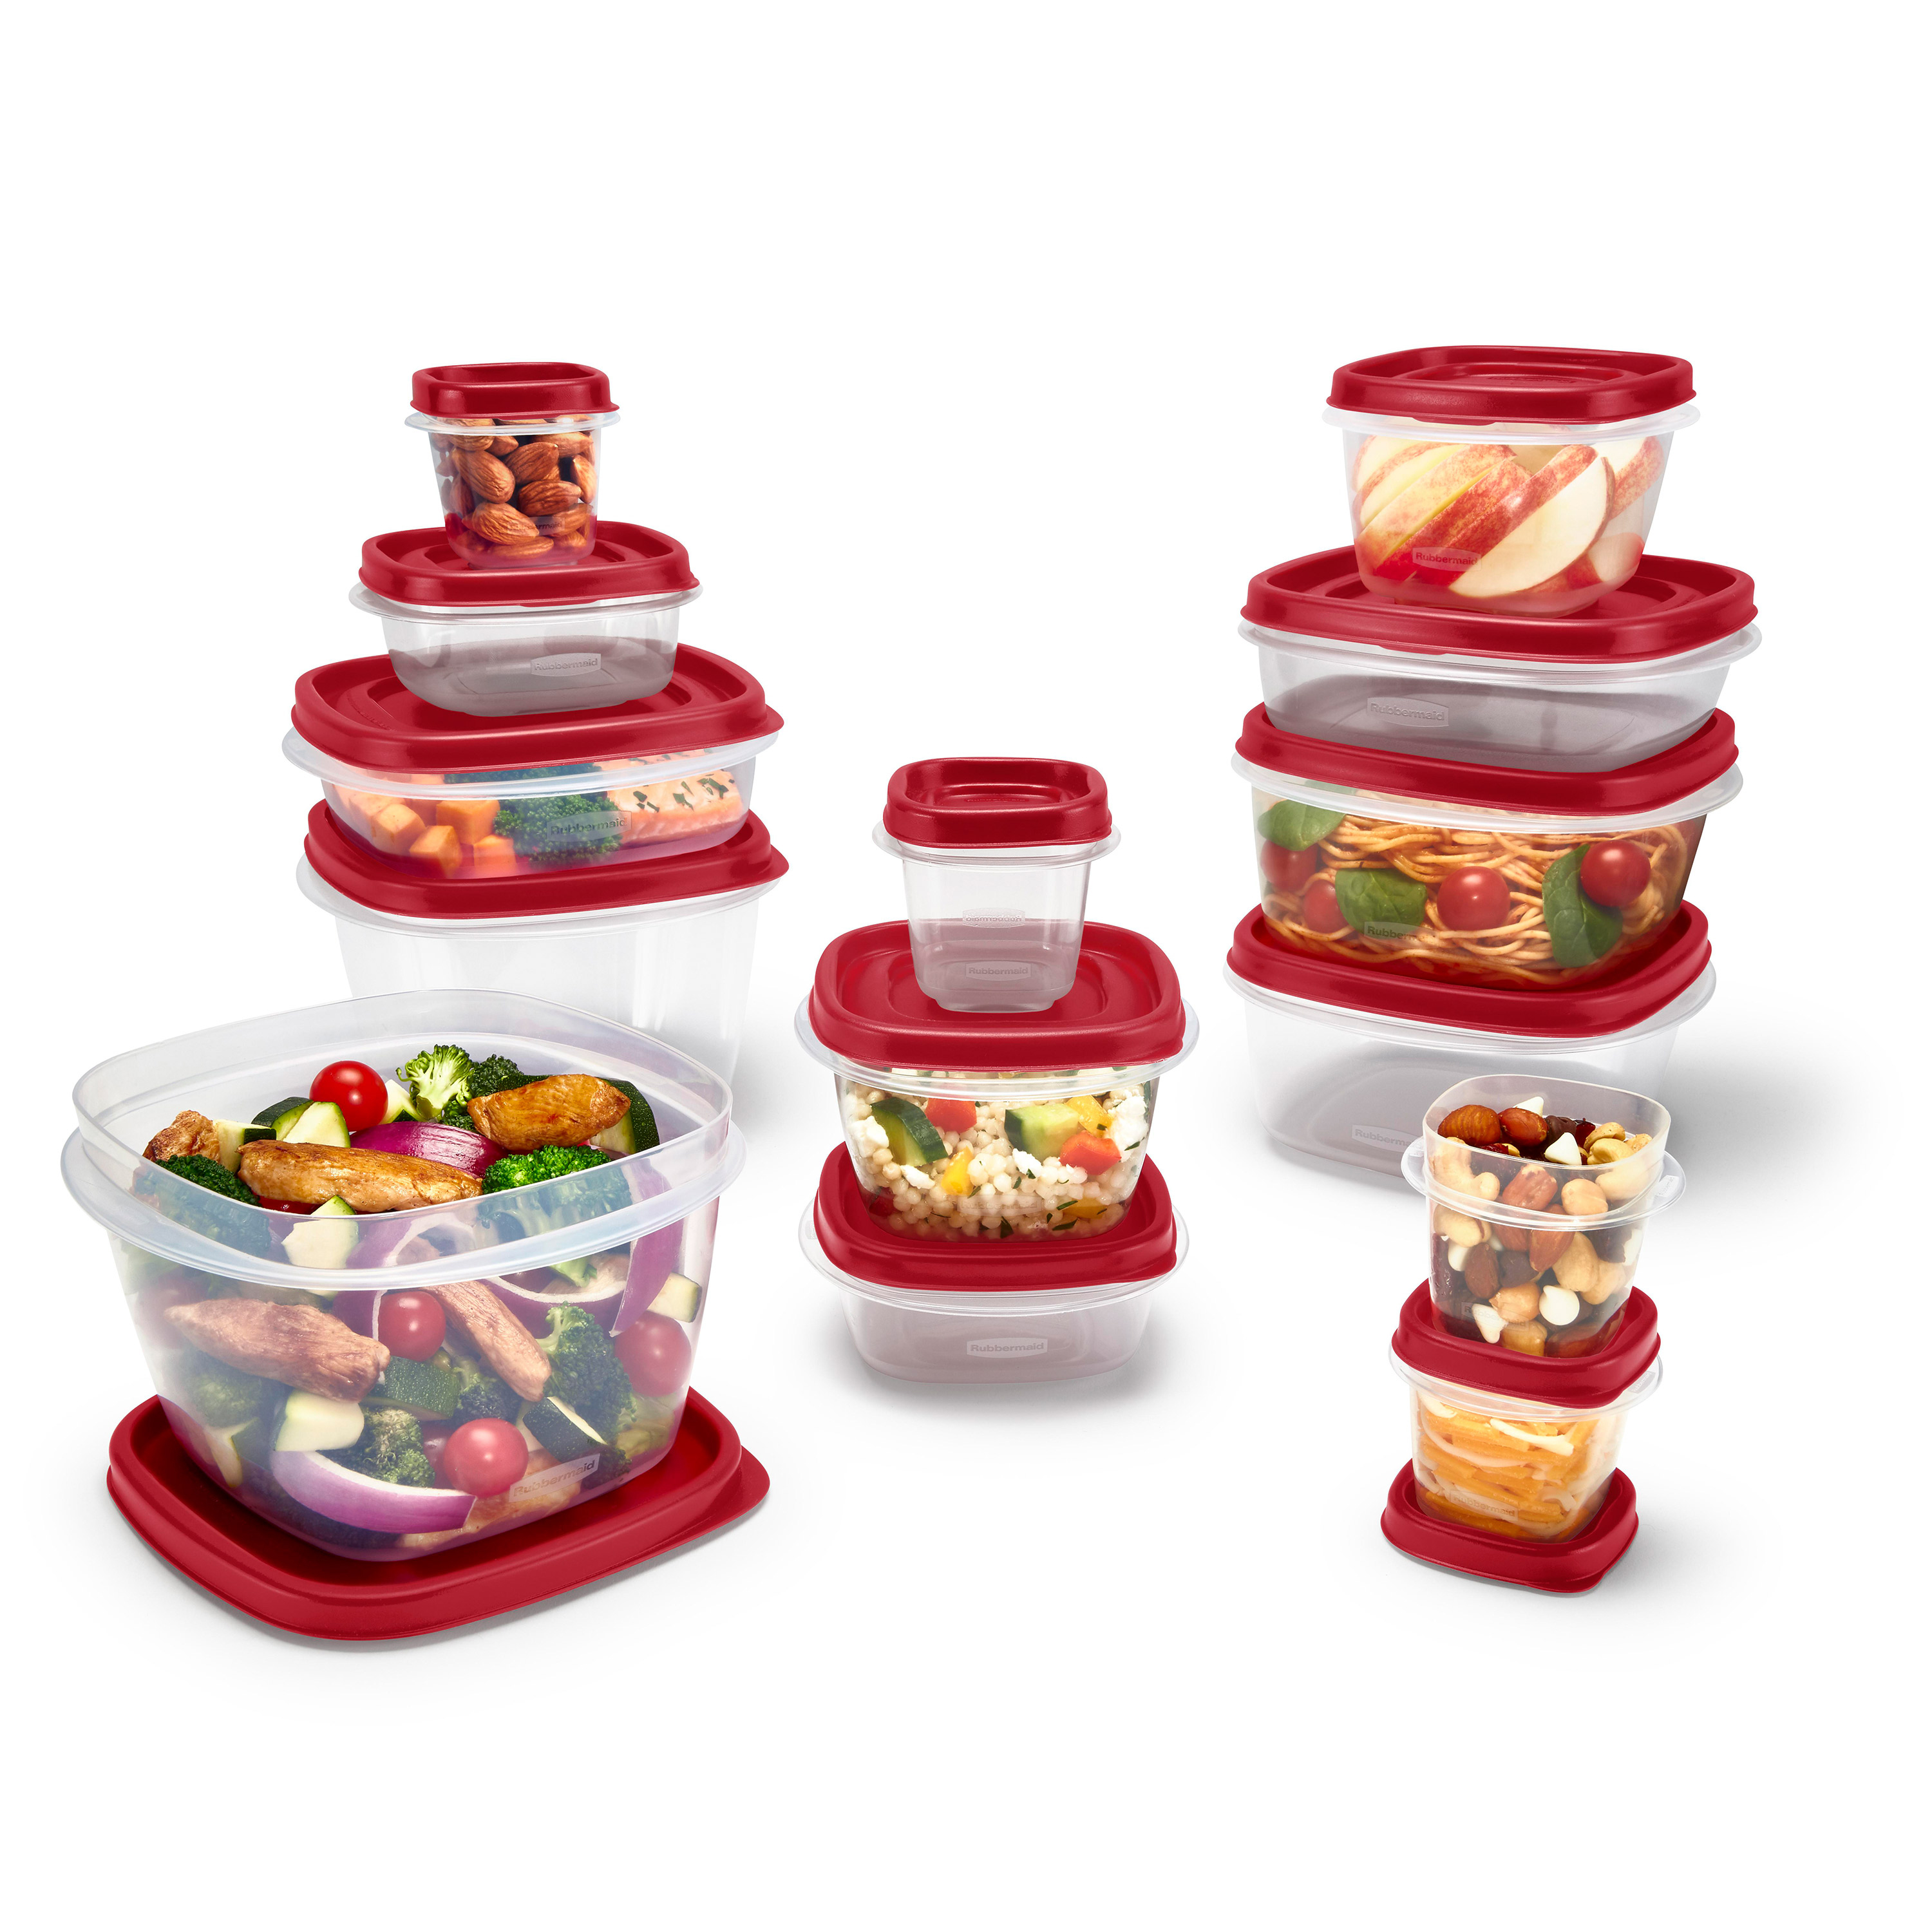 24-Piece Rubbermaid Easy Find Vented Lids Food Storage Containers